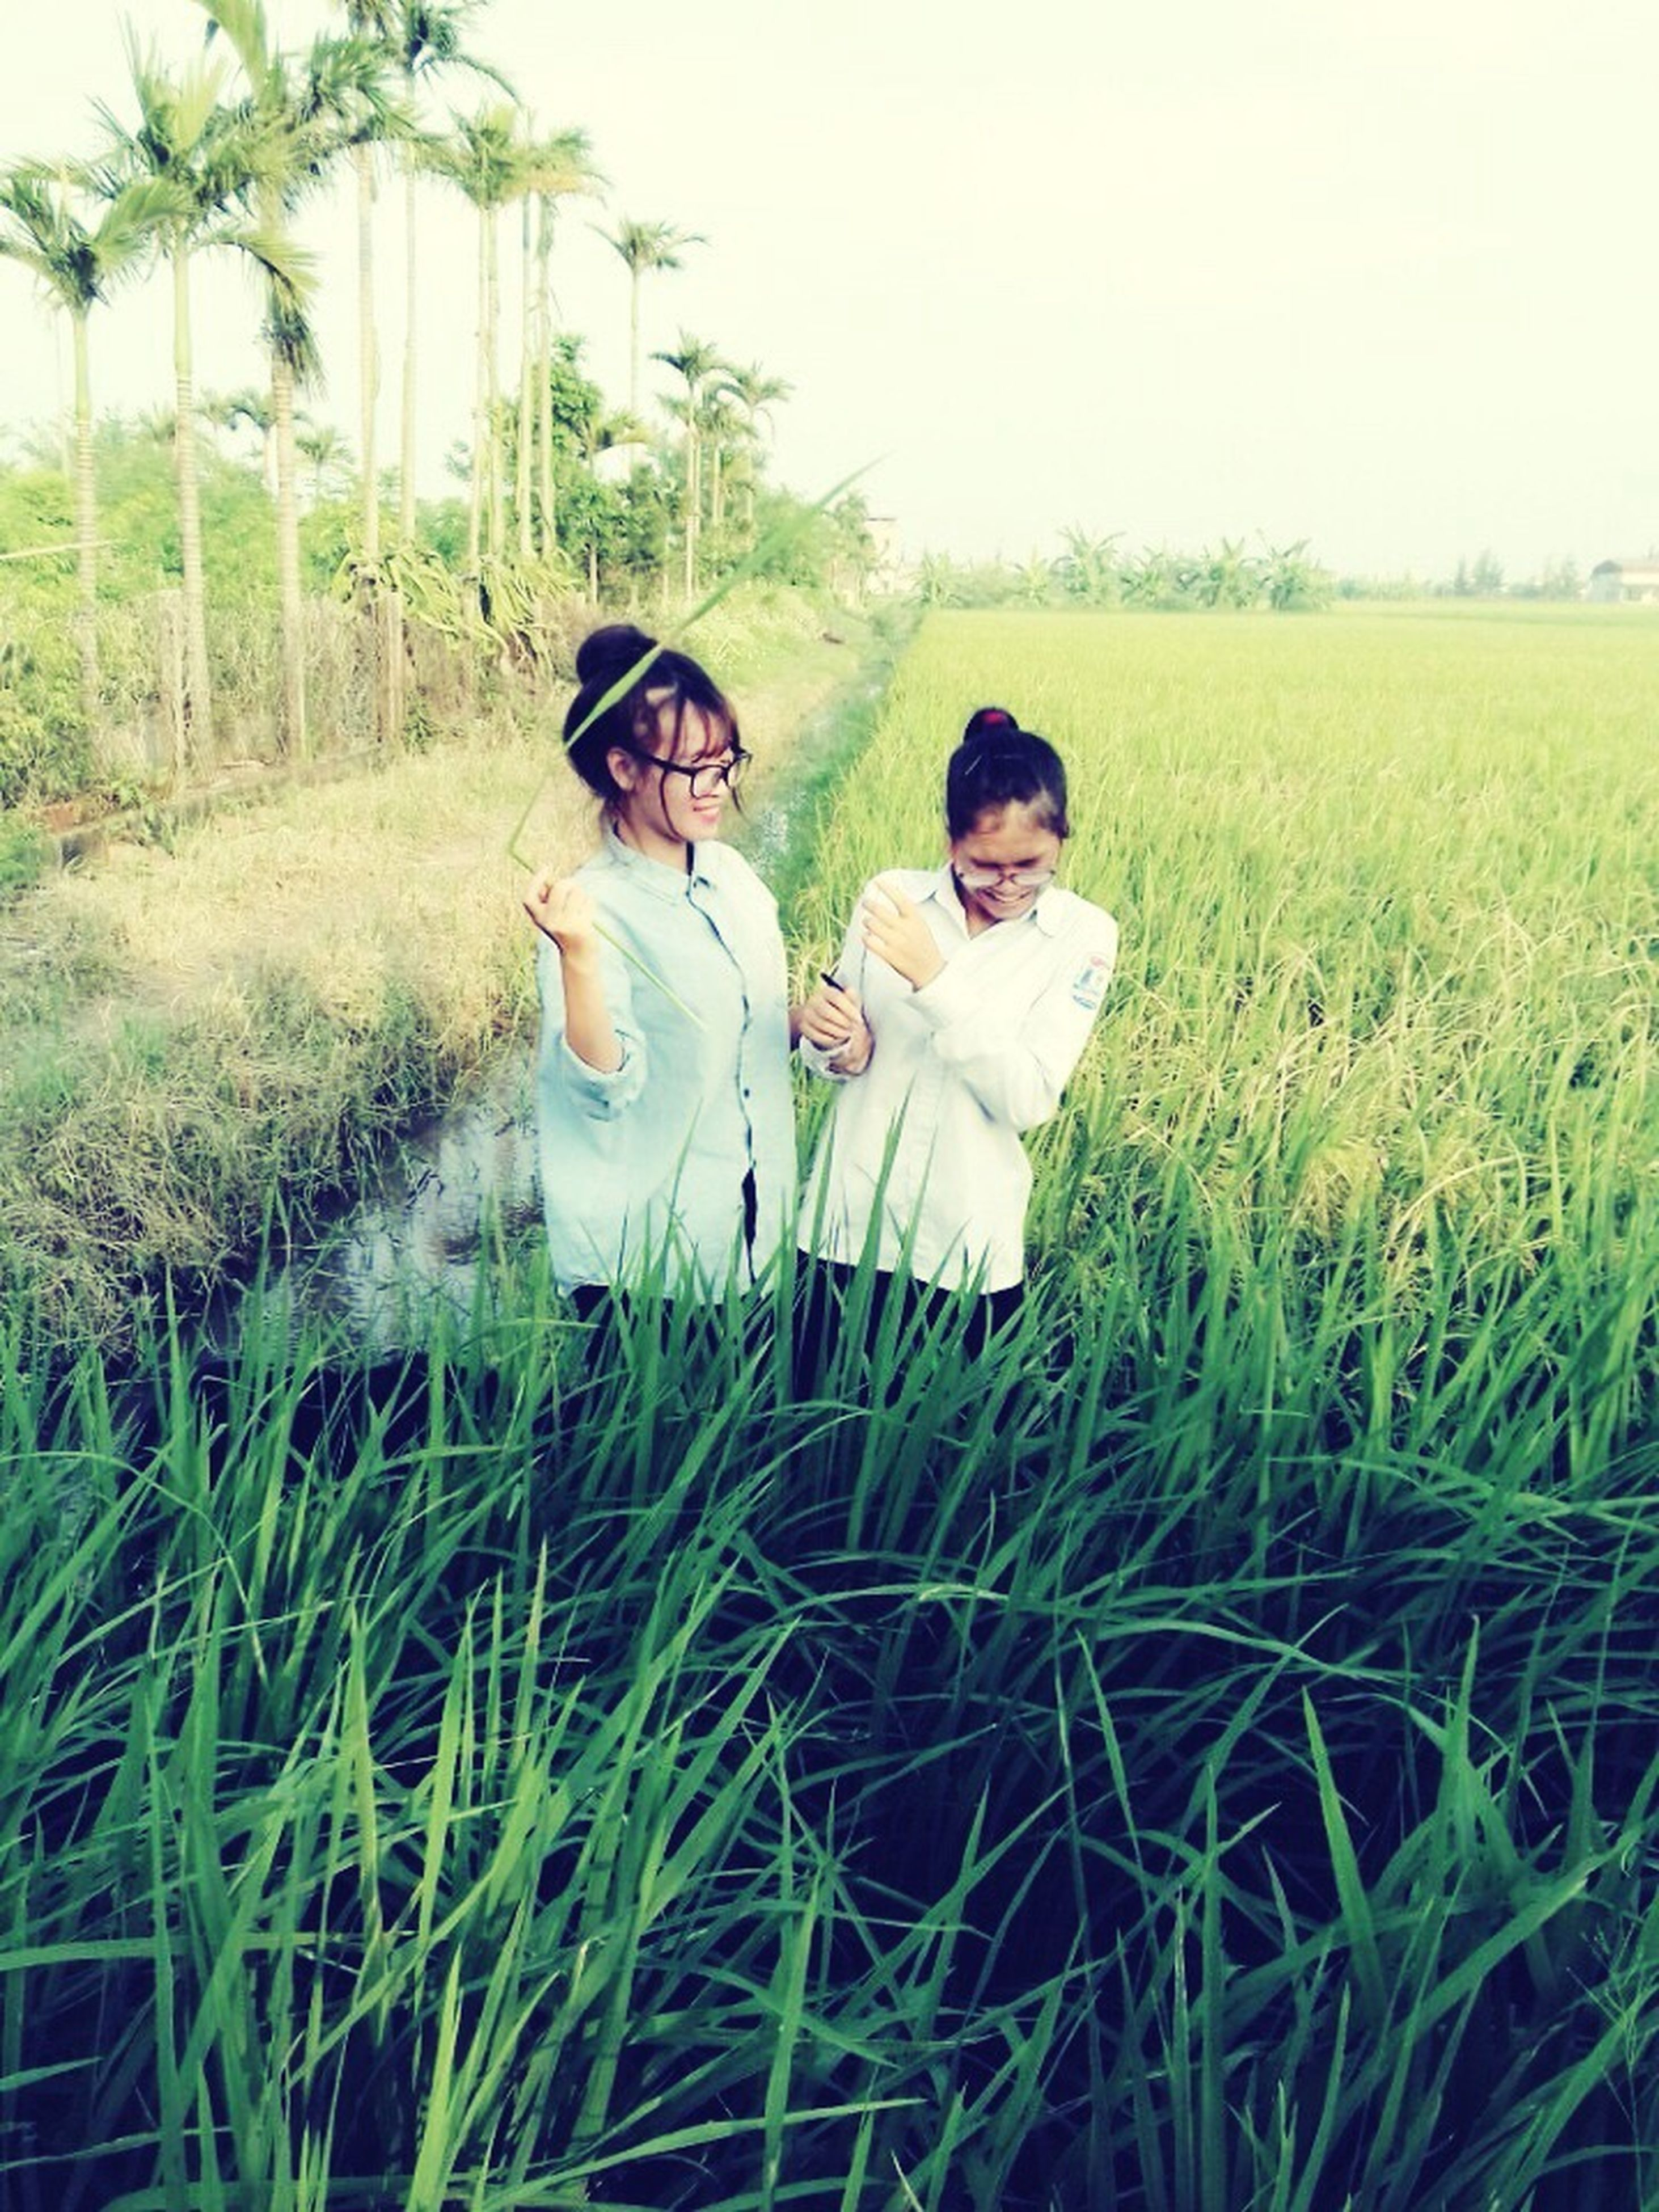 grass, togetherness, leisure activity, young adult, non-urban scene, casual clothing, person, green color, field, growth, sky, day, outdoors, nature, vacations, tranquility, focus on foreground, tranquil scene, beauty in nature